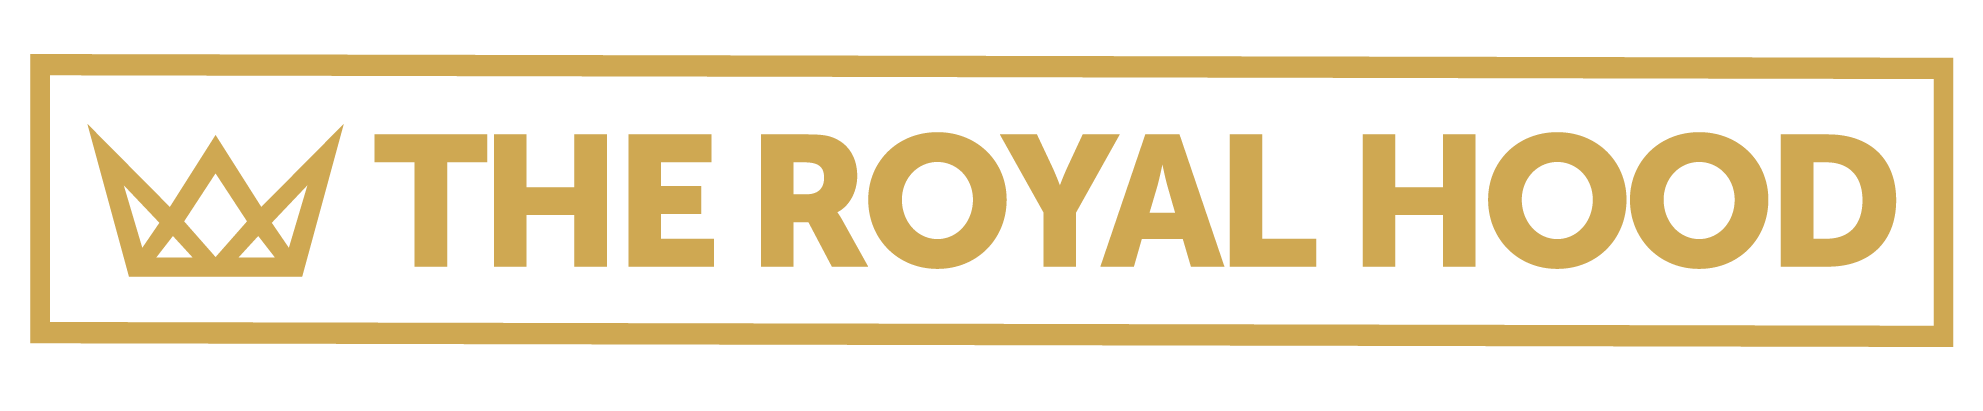 The Royal Hood Mentoring Program